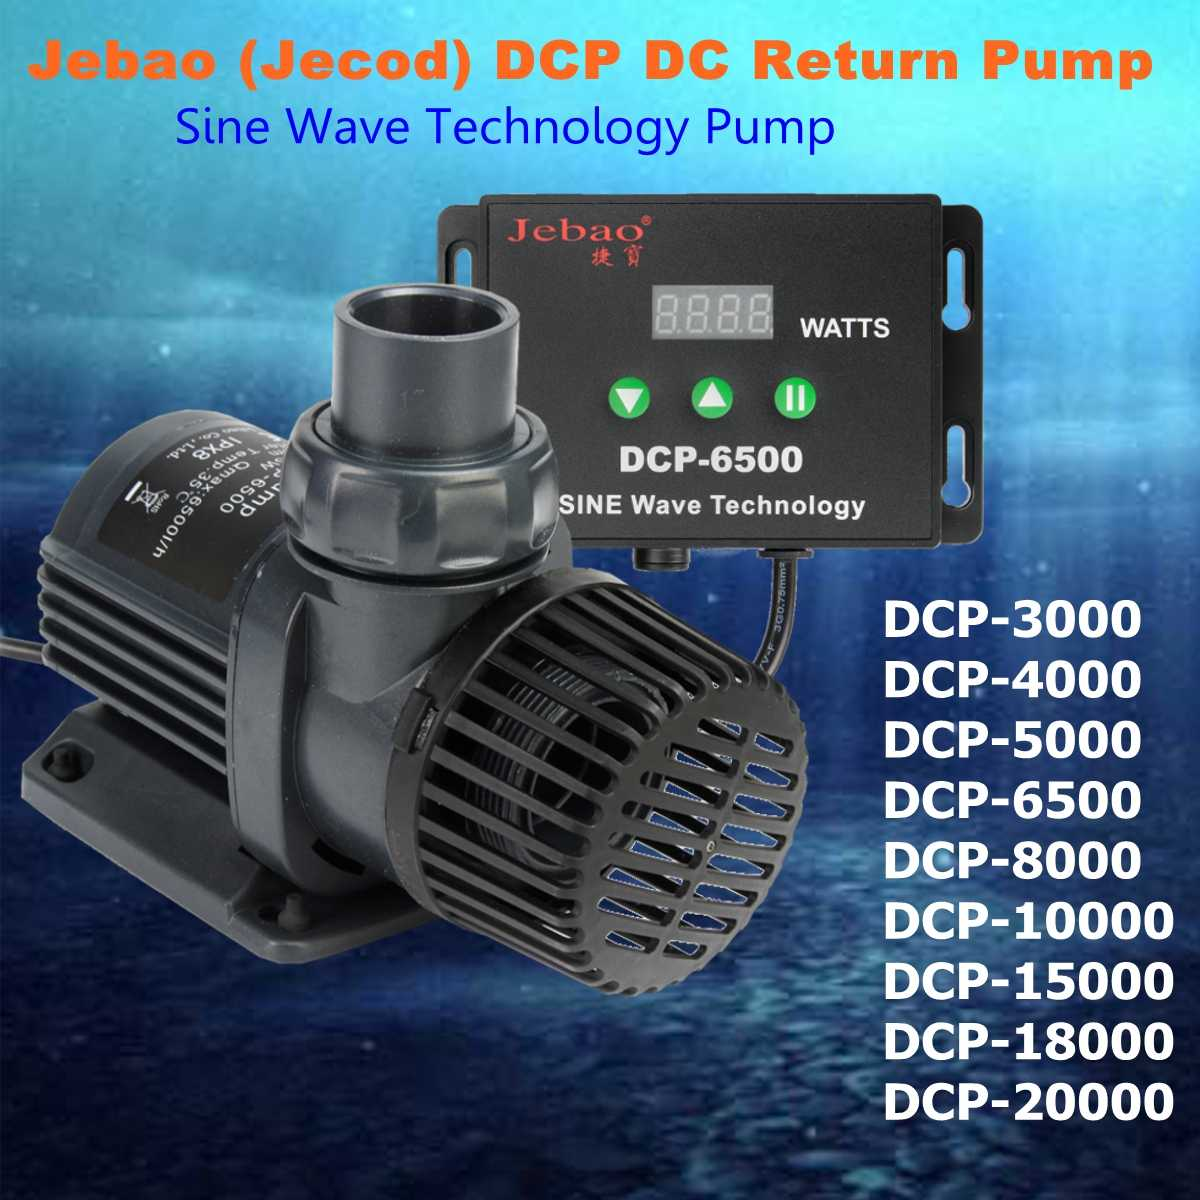 Jebao/Jecod DCP Series 3500-20000 Maring Flow Rate DC Sine Wave Return Submersible Water Pump